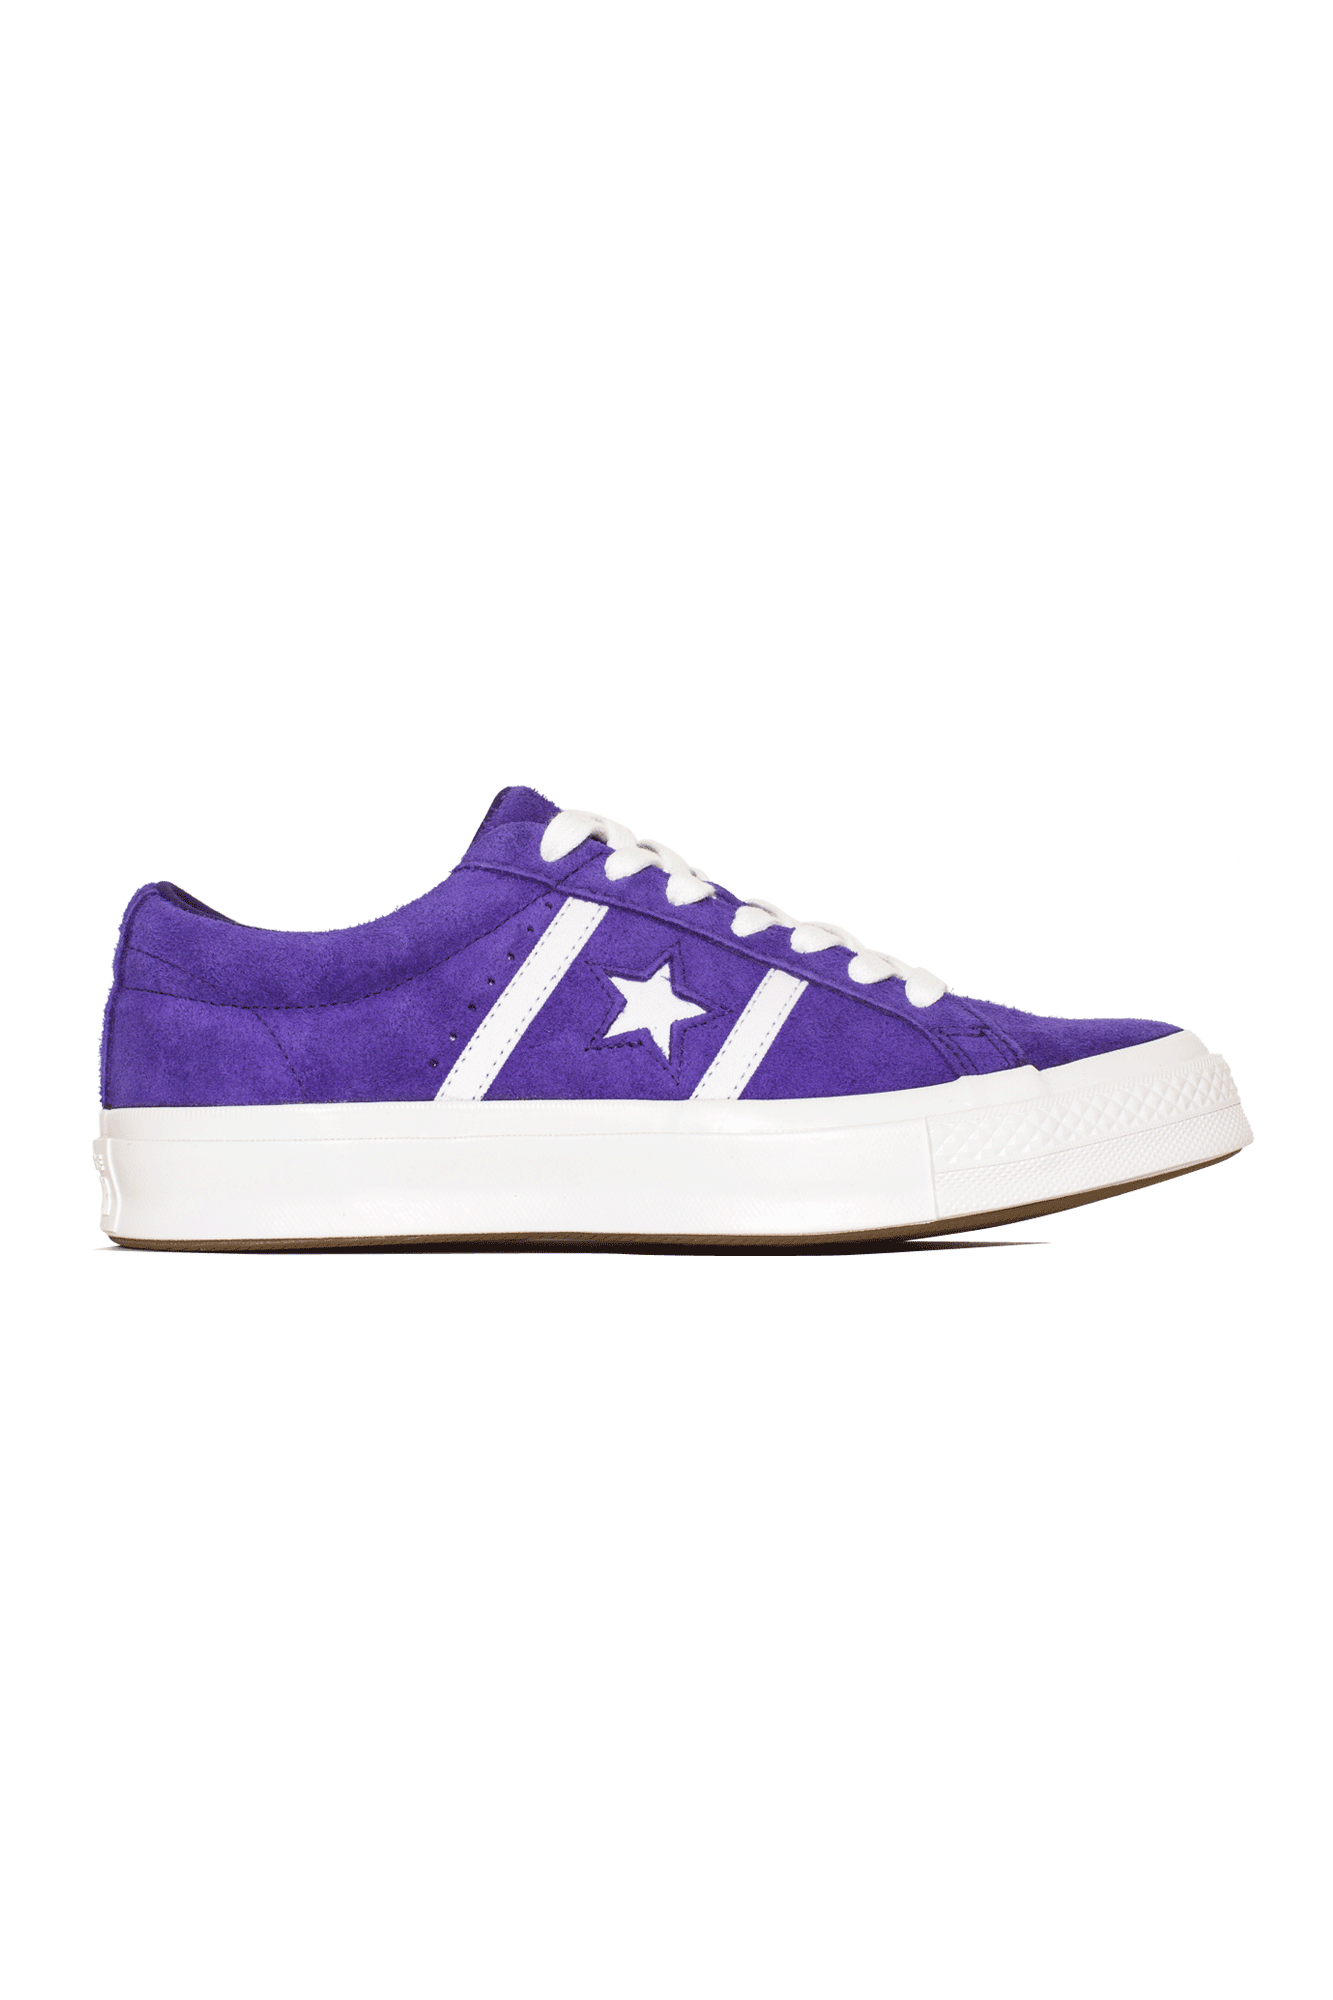 Converse Sneakers One Star Academy Ox Viola 164391C#000#C0014#7,5 - One Block Down